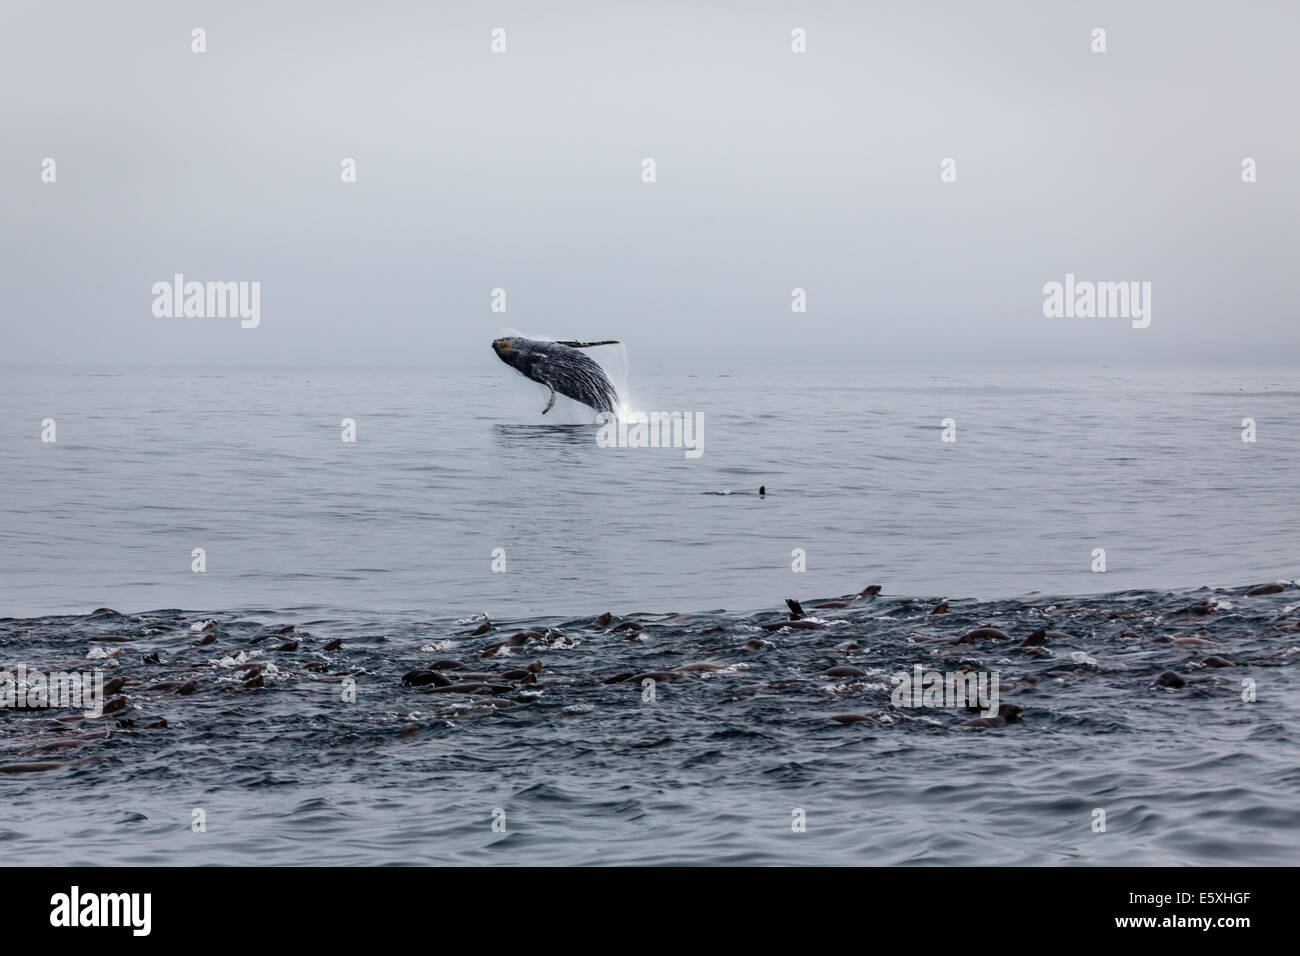 Humpback whale breaching with pod of sea lions engaged in a feeding frenzy in the foreground - Stock Image